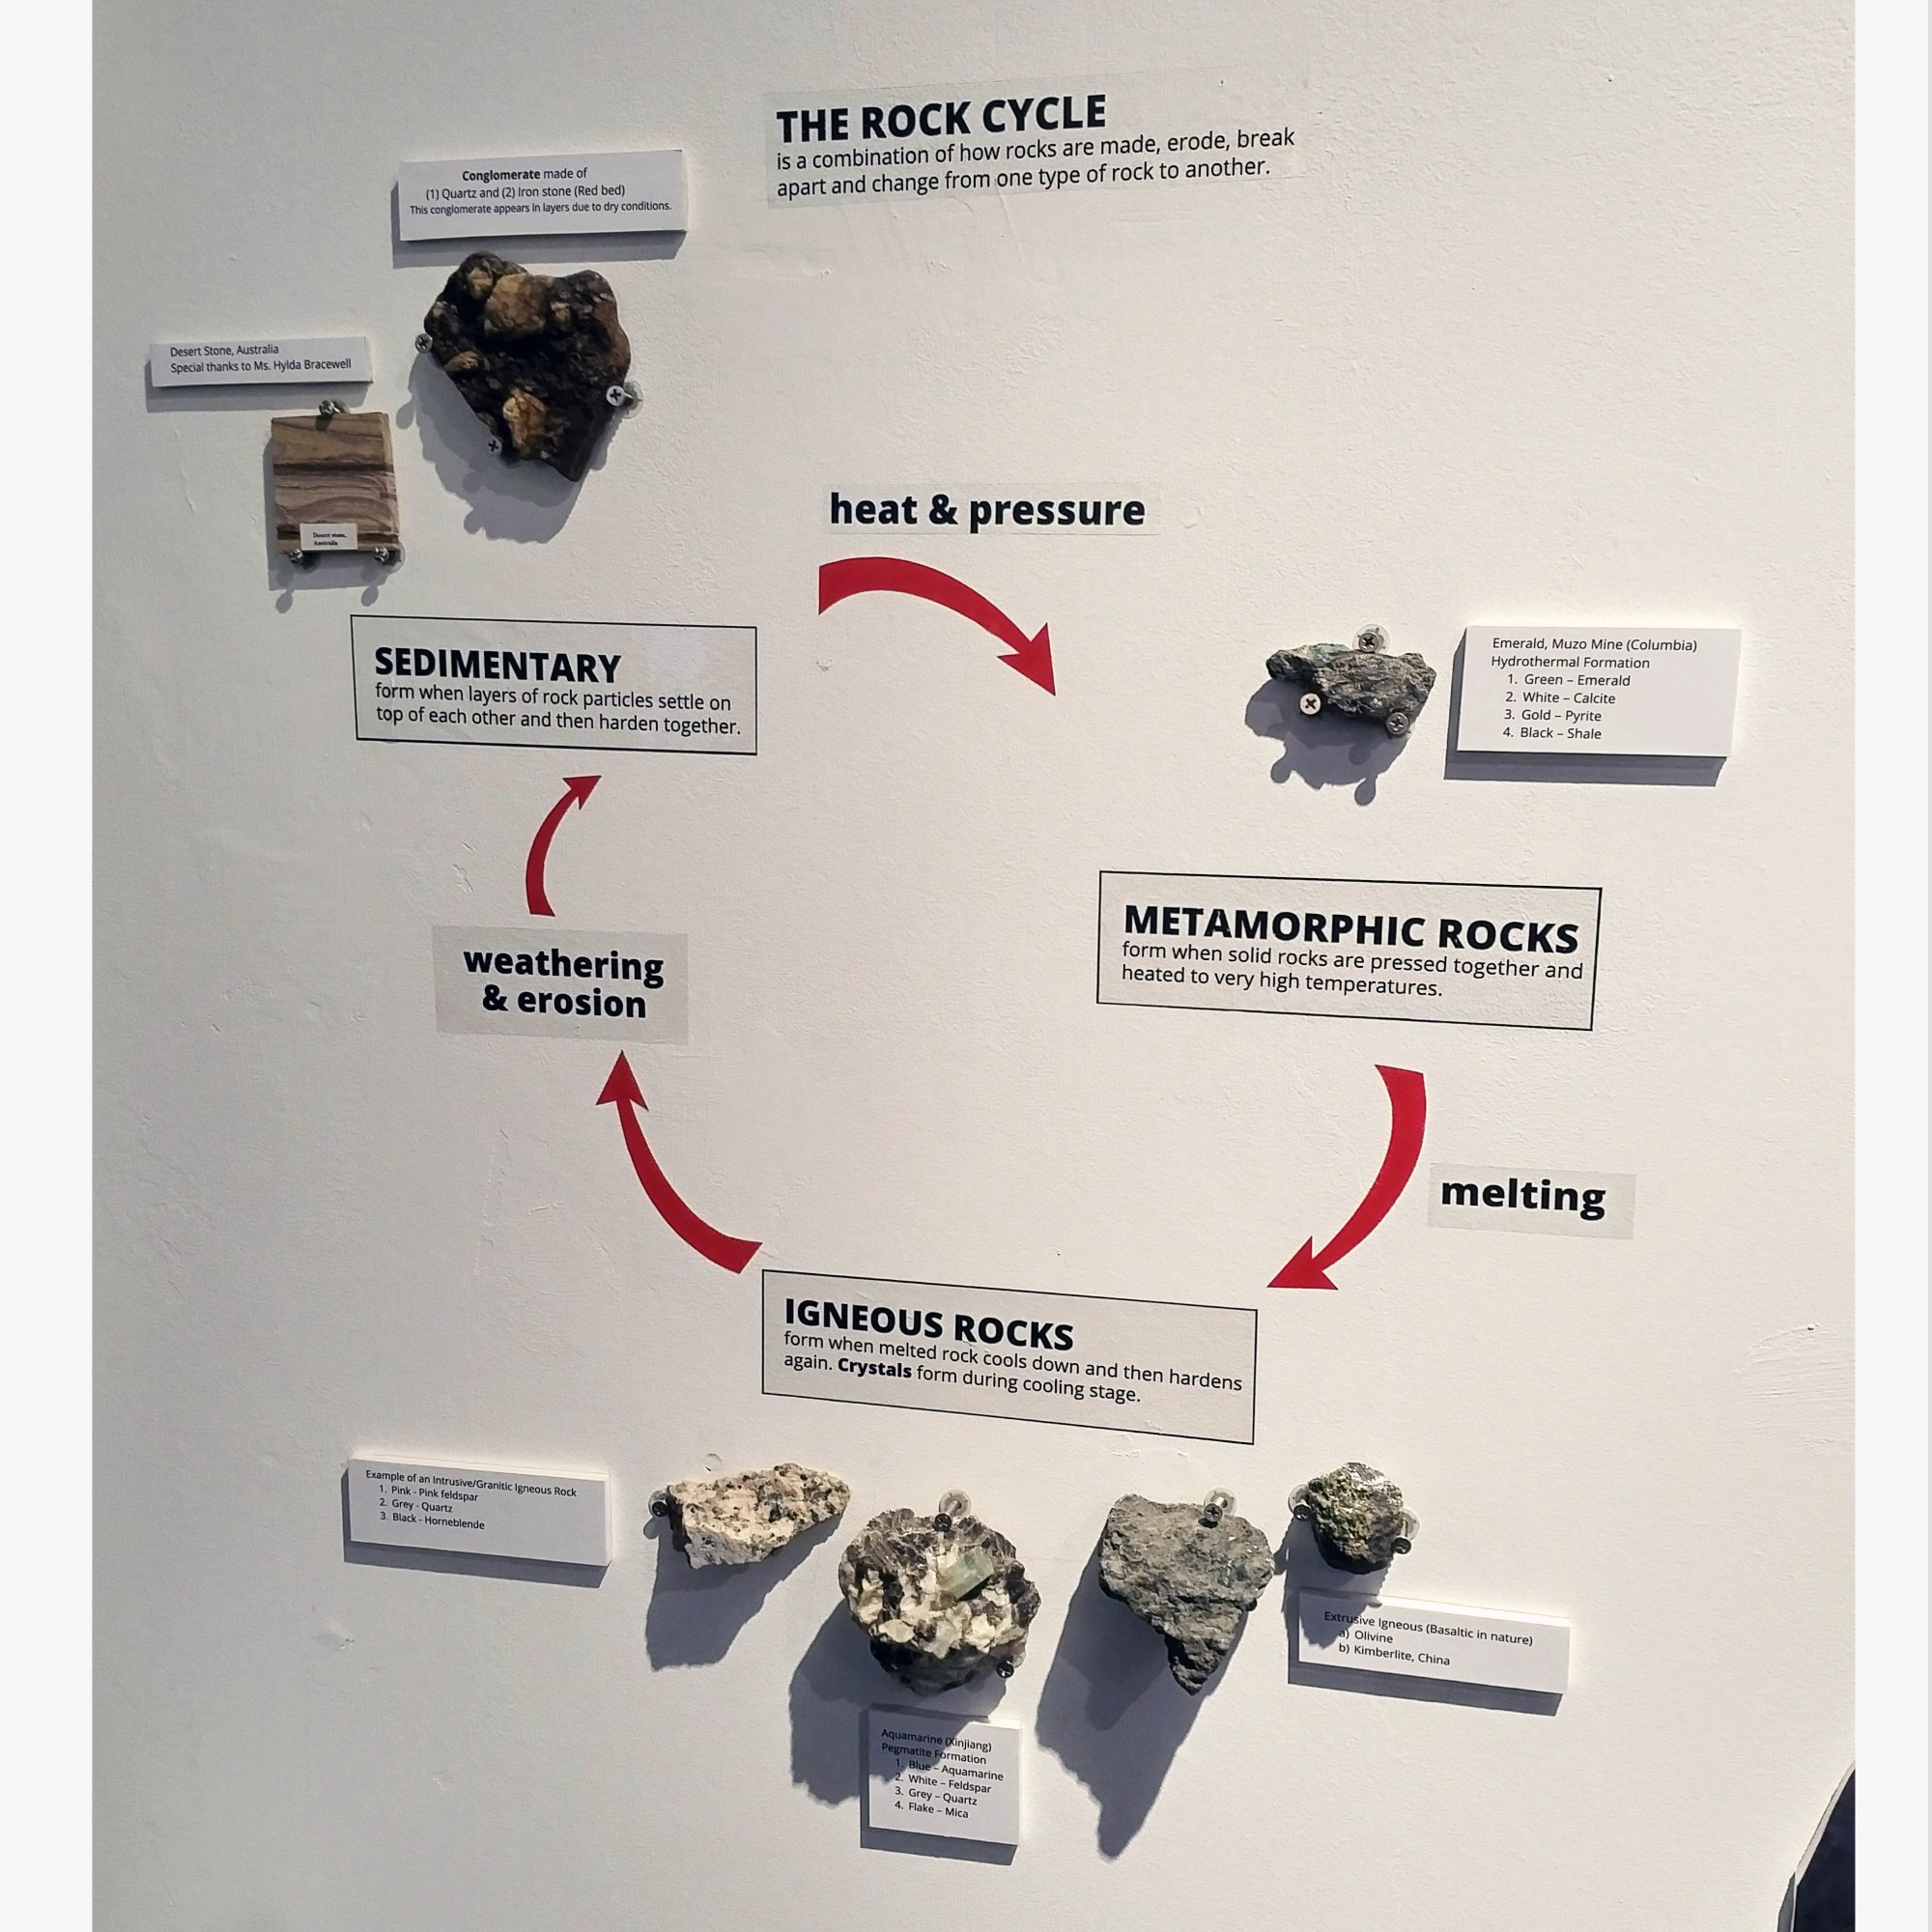 hight resolution of the gem museum presents the rock cycle